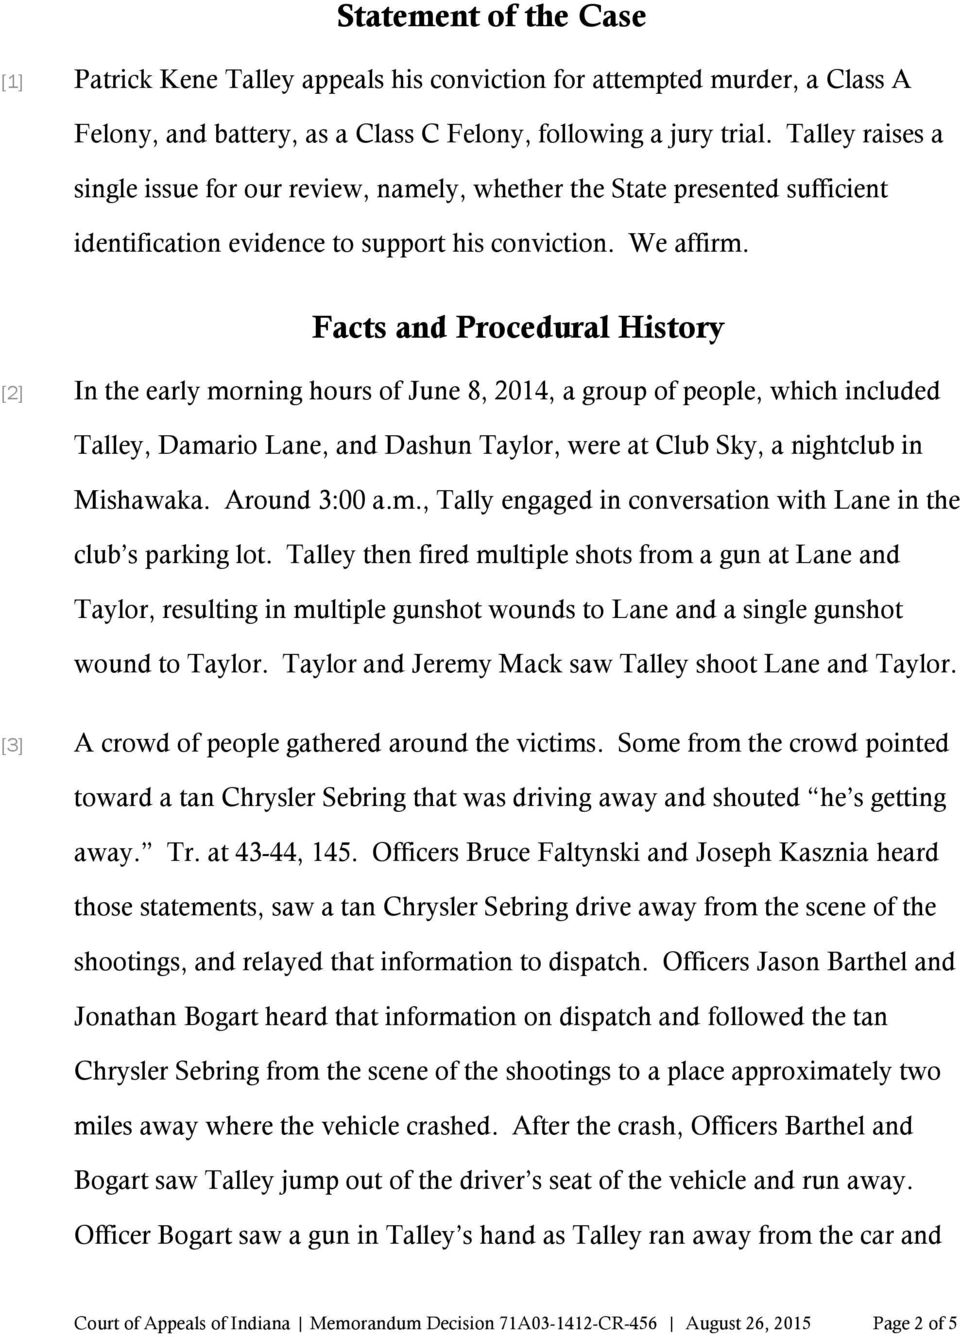 Facts and Procedural History [2] In the early morning hours of June 8, 2014, a group of people, which included Talley, Damario Lane, and Dashun Taylor, were at Club Sky, a nightclub in Mishawaka.